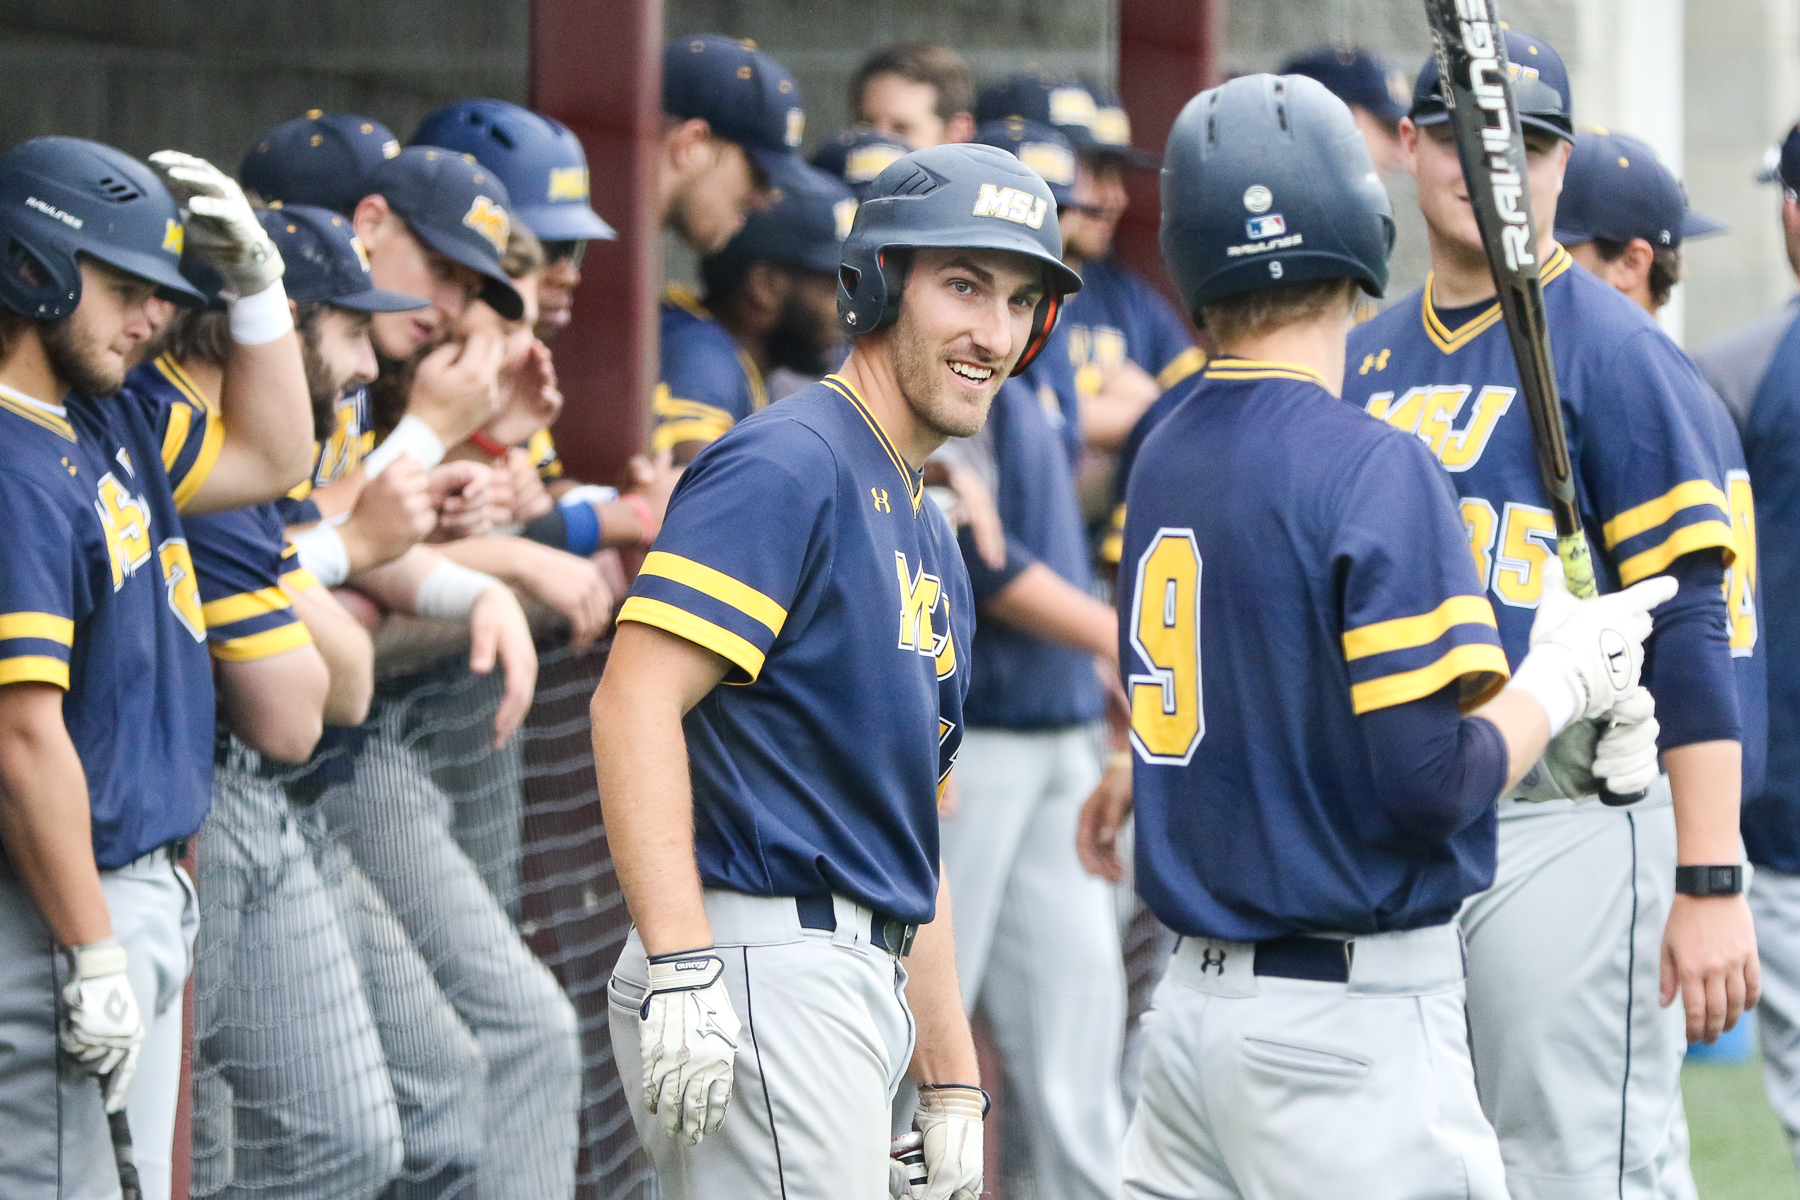 Baseball season ends in HCAC tournament finals